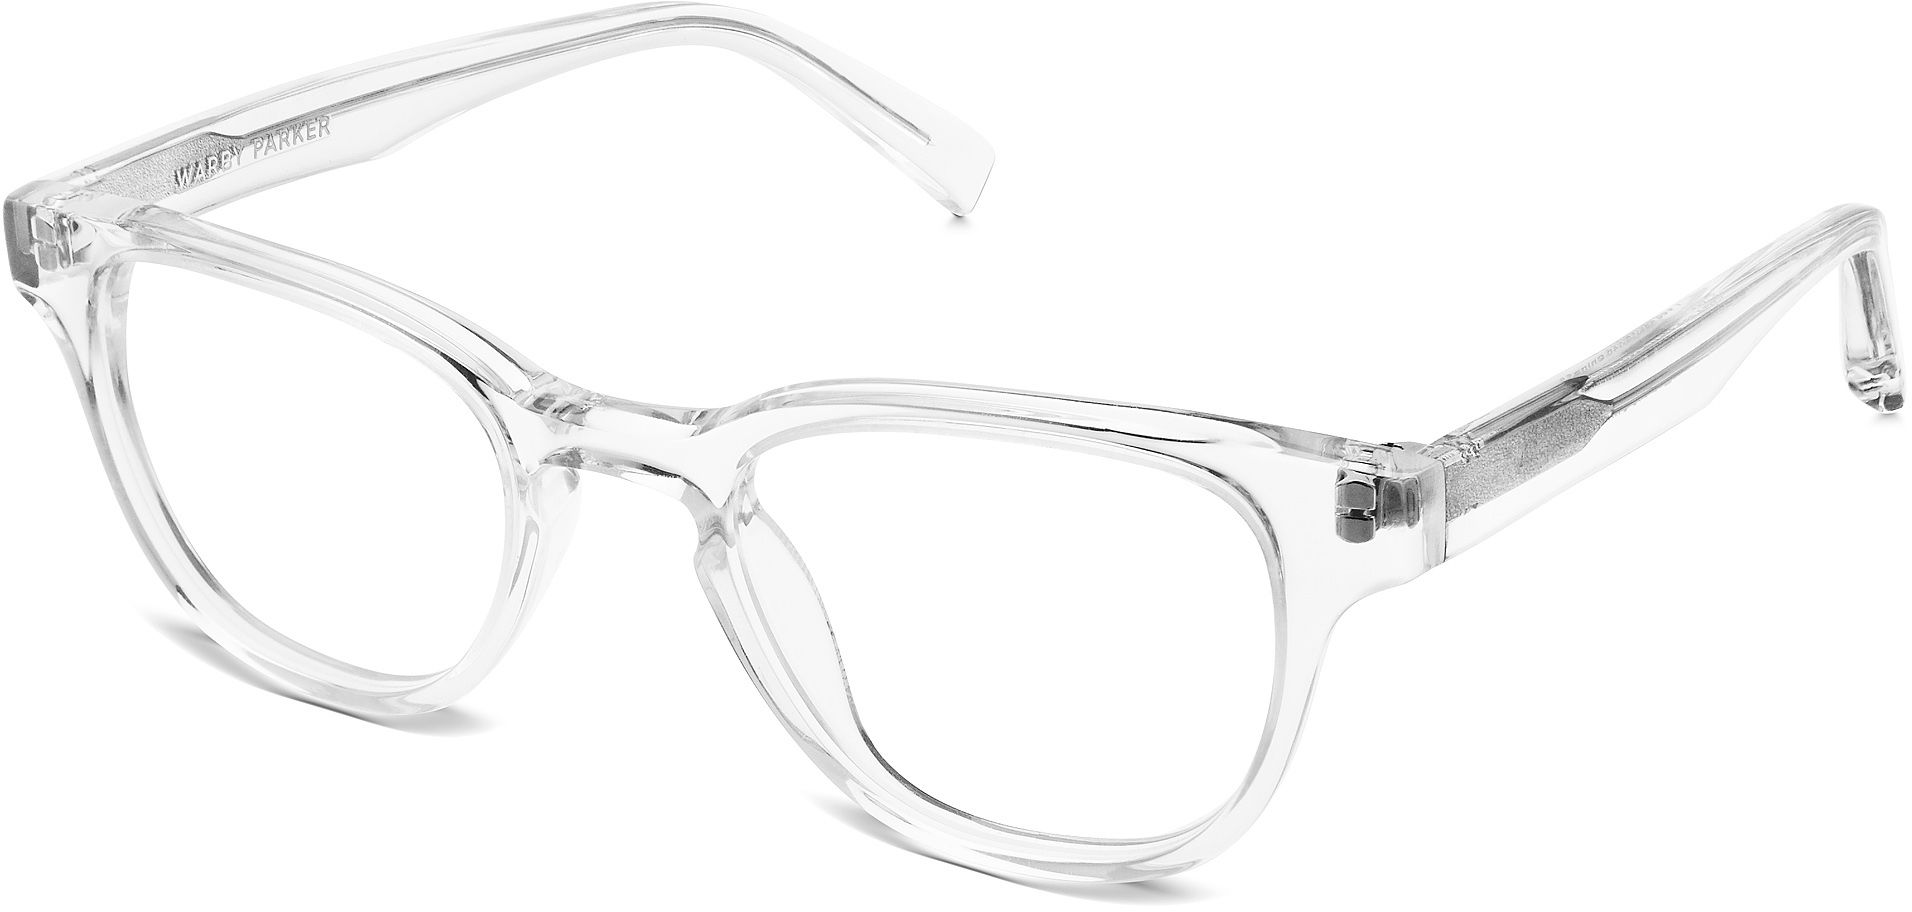 Coley Eyeglasses in Crystal for Men | Warby Parker